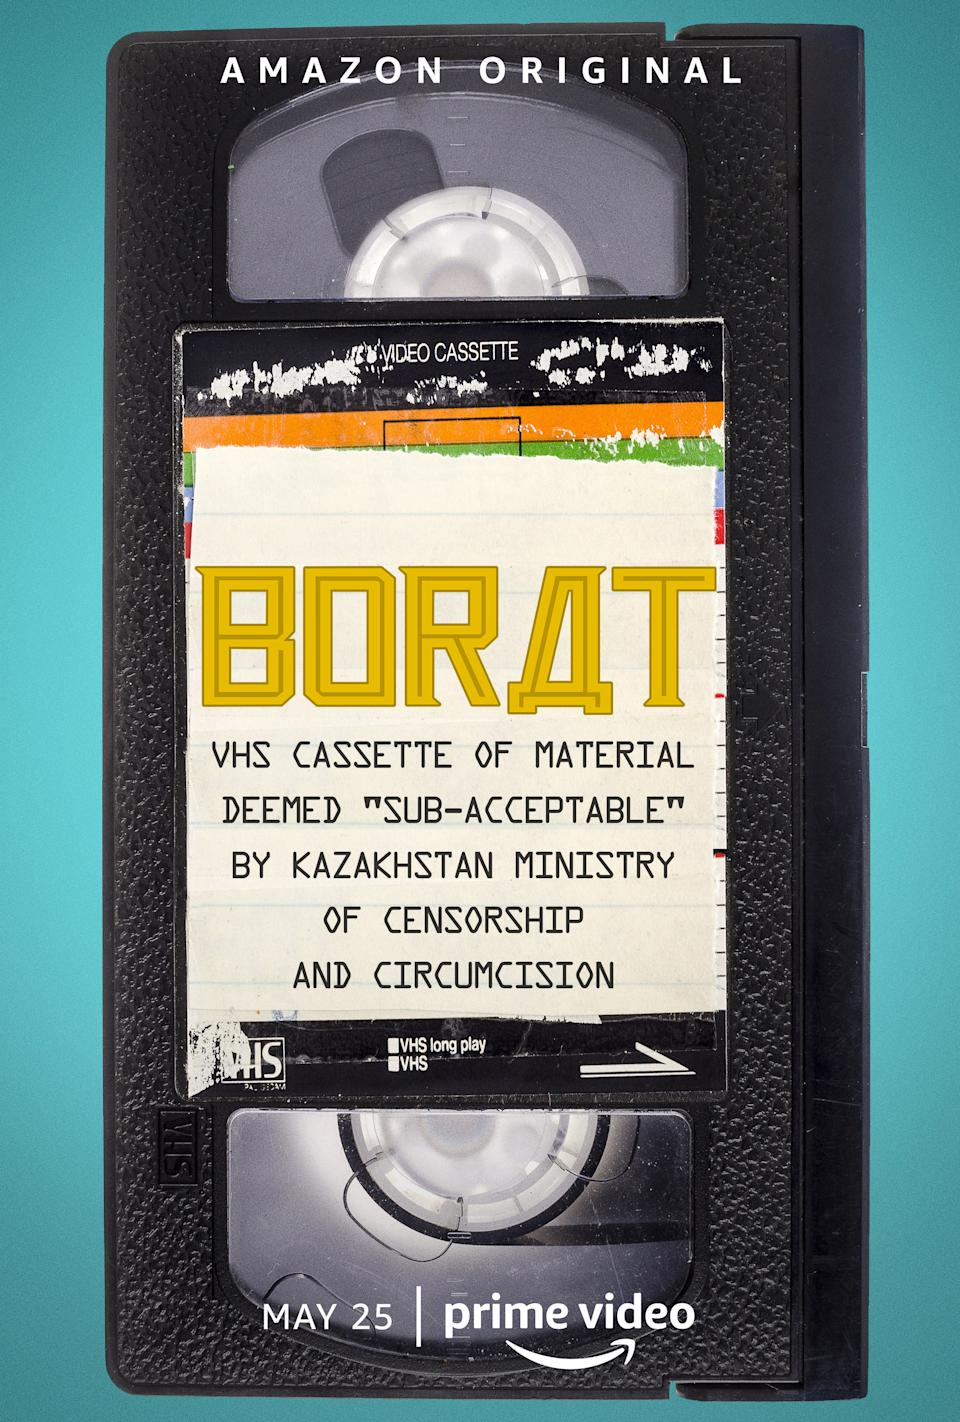 watch Borat: VHS Cassette of Material Deemed 'Sub-acceptable' by Kazakhstan Ministry of Censorship and Circumcision on soap2day